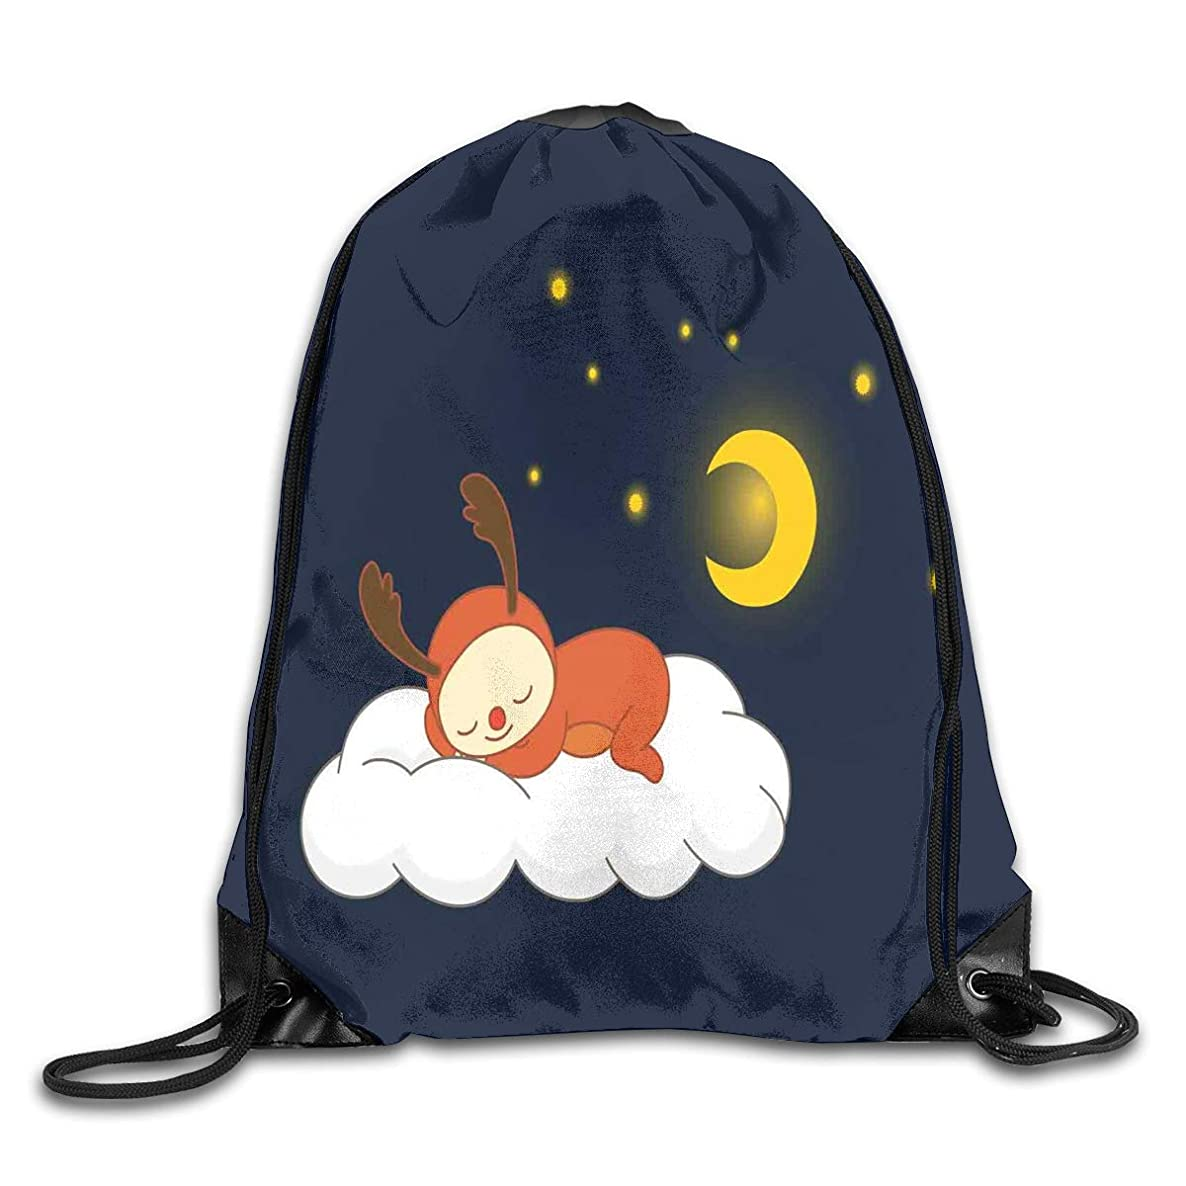 Drawstring Backpacks Bags,Reindeer Sleeping With Stars And Crescent Moon On Blue Shade Backdrop,5 Liter Capacity,Adjustable